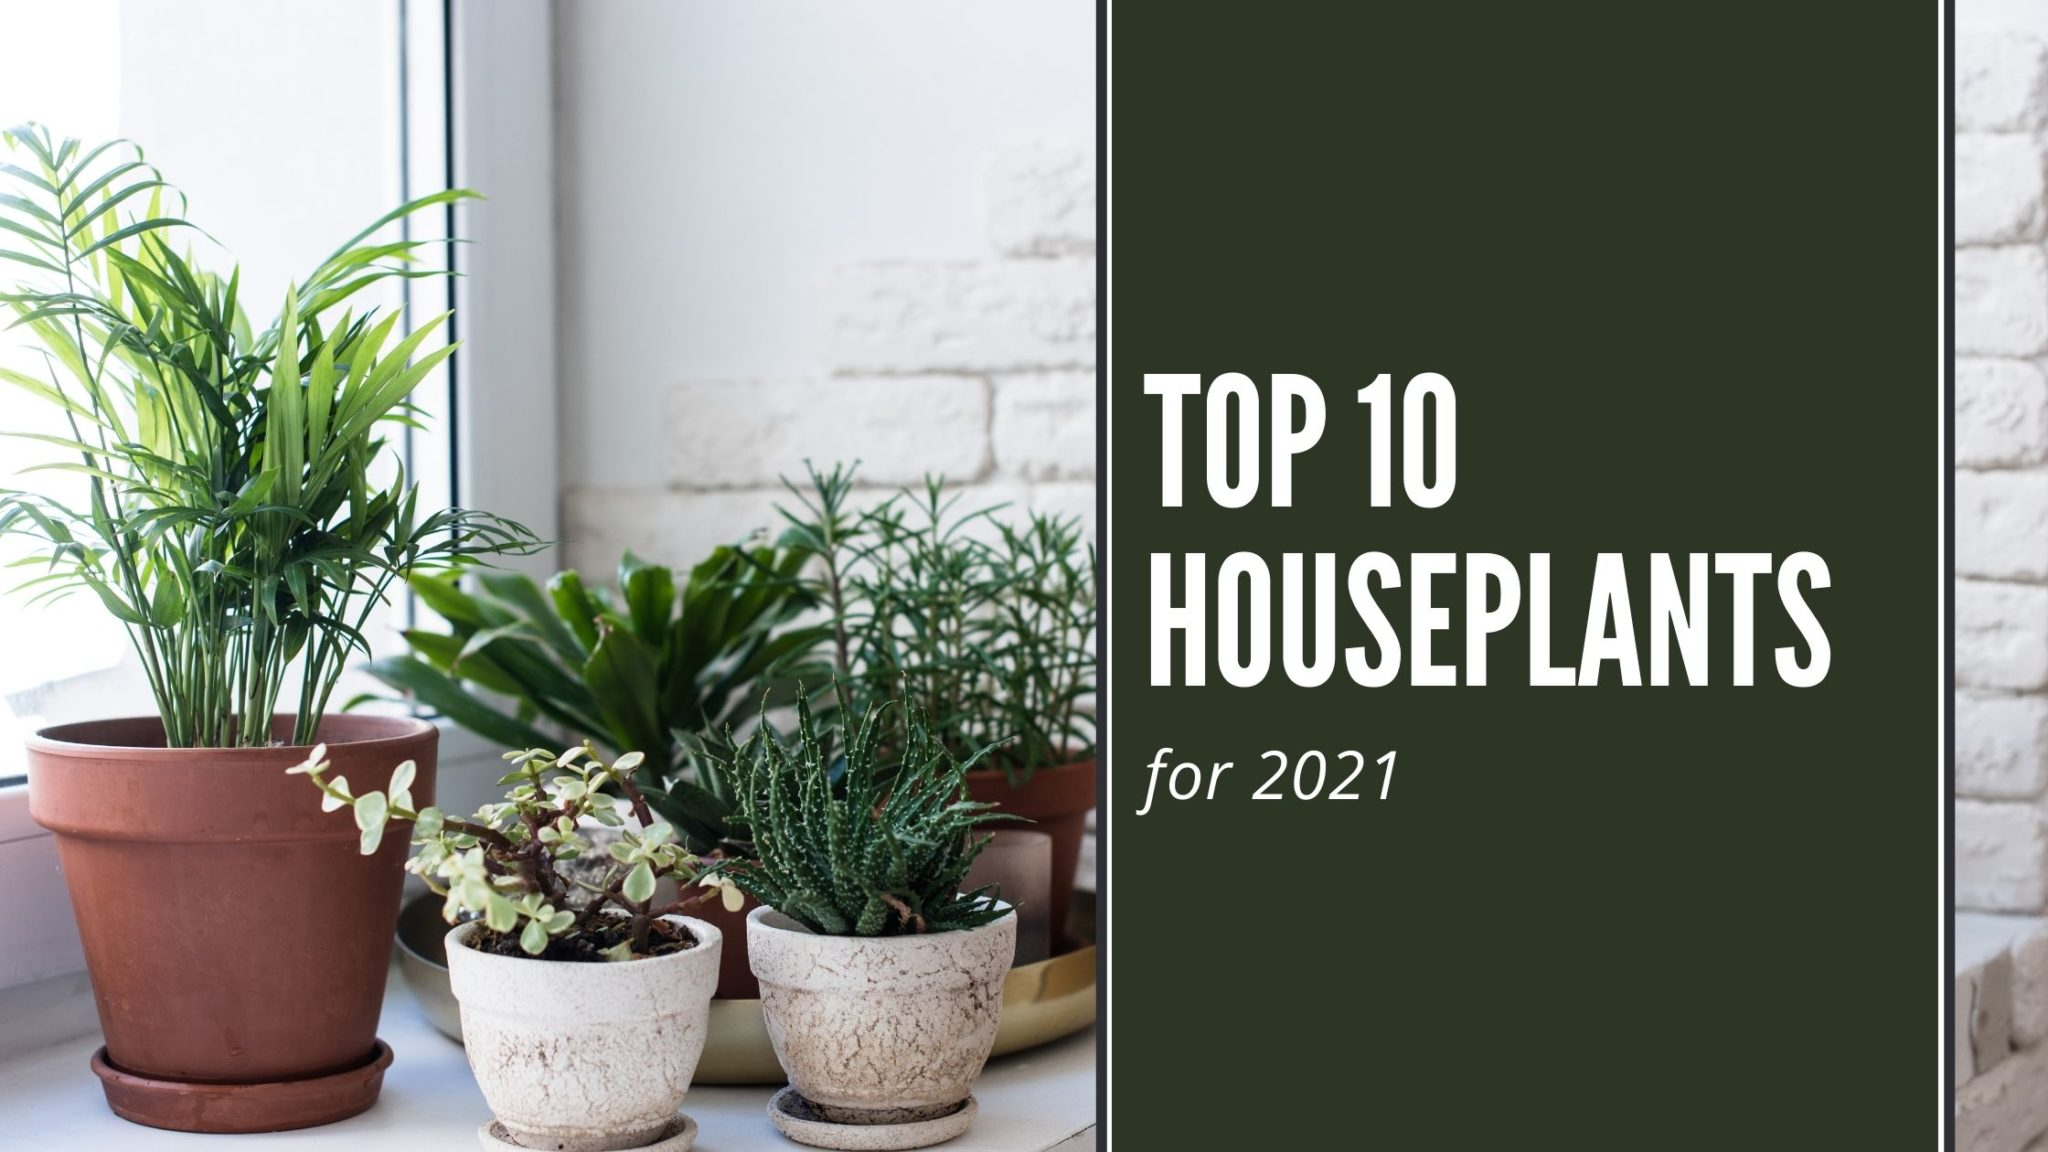 The Hottest Houseplant Trends for 2021